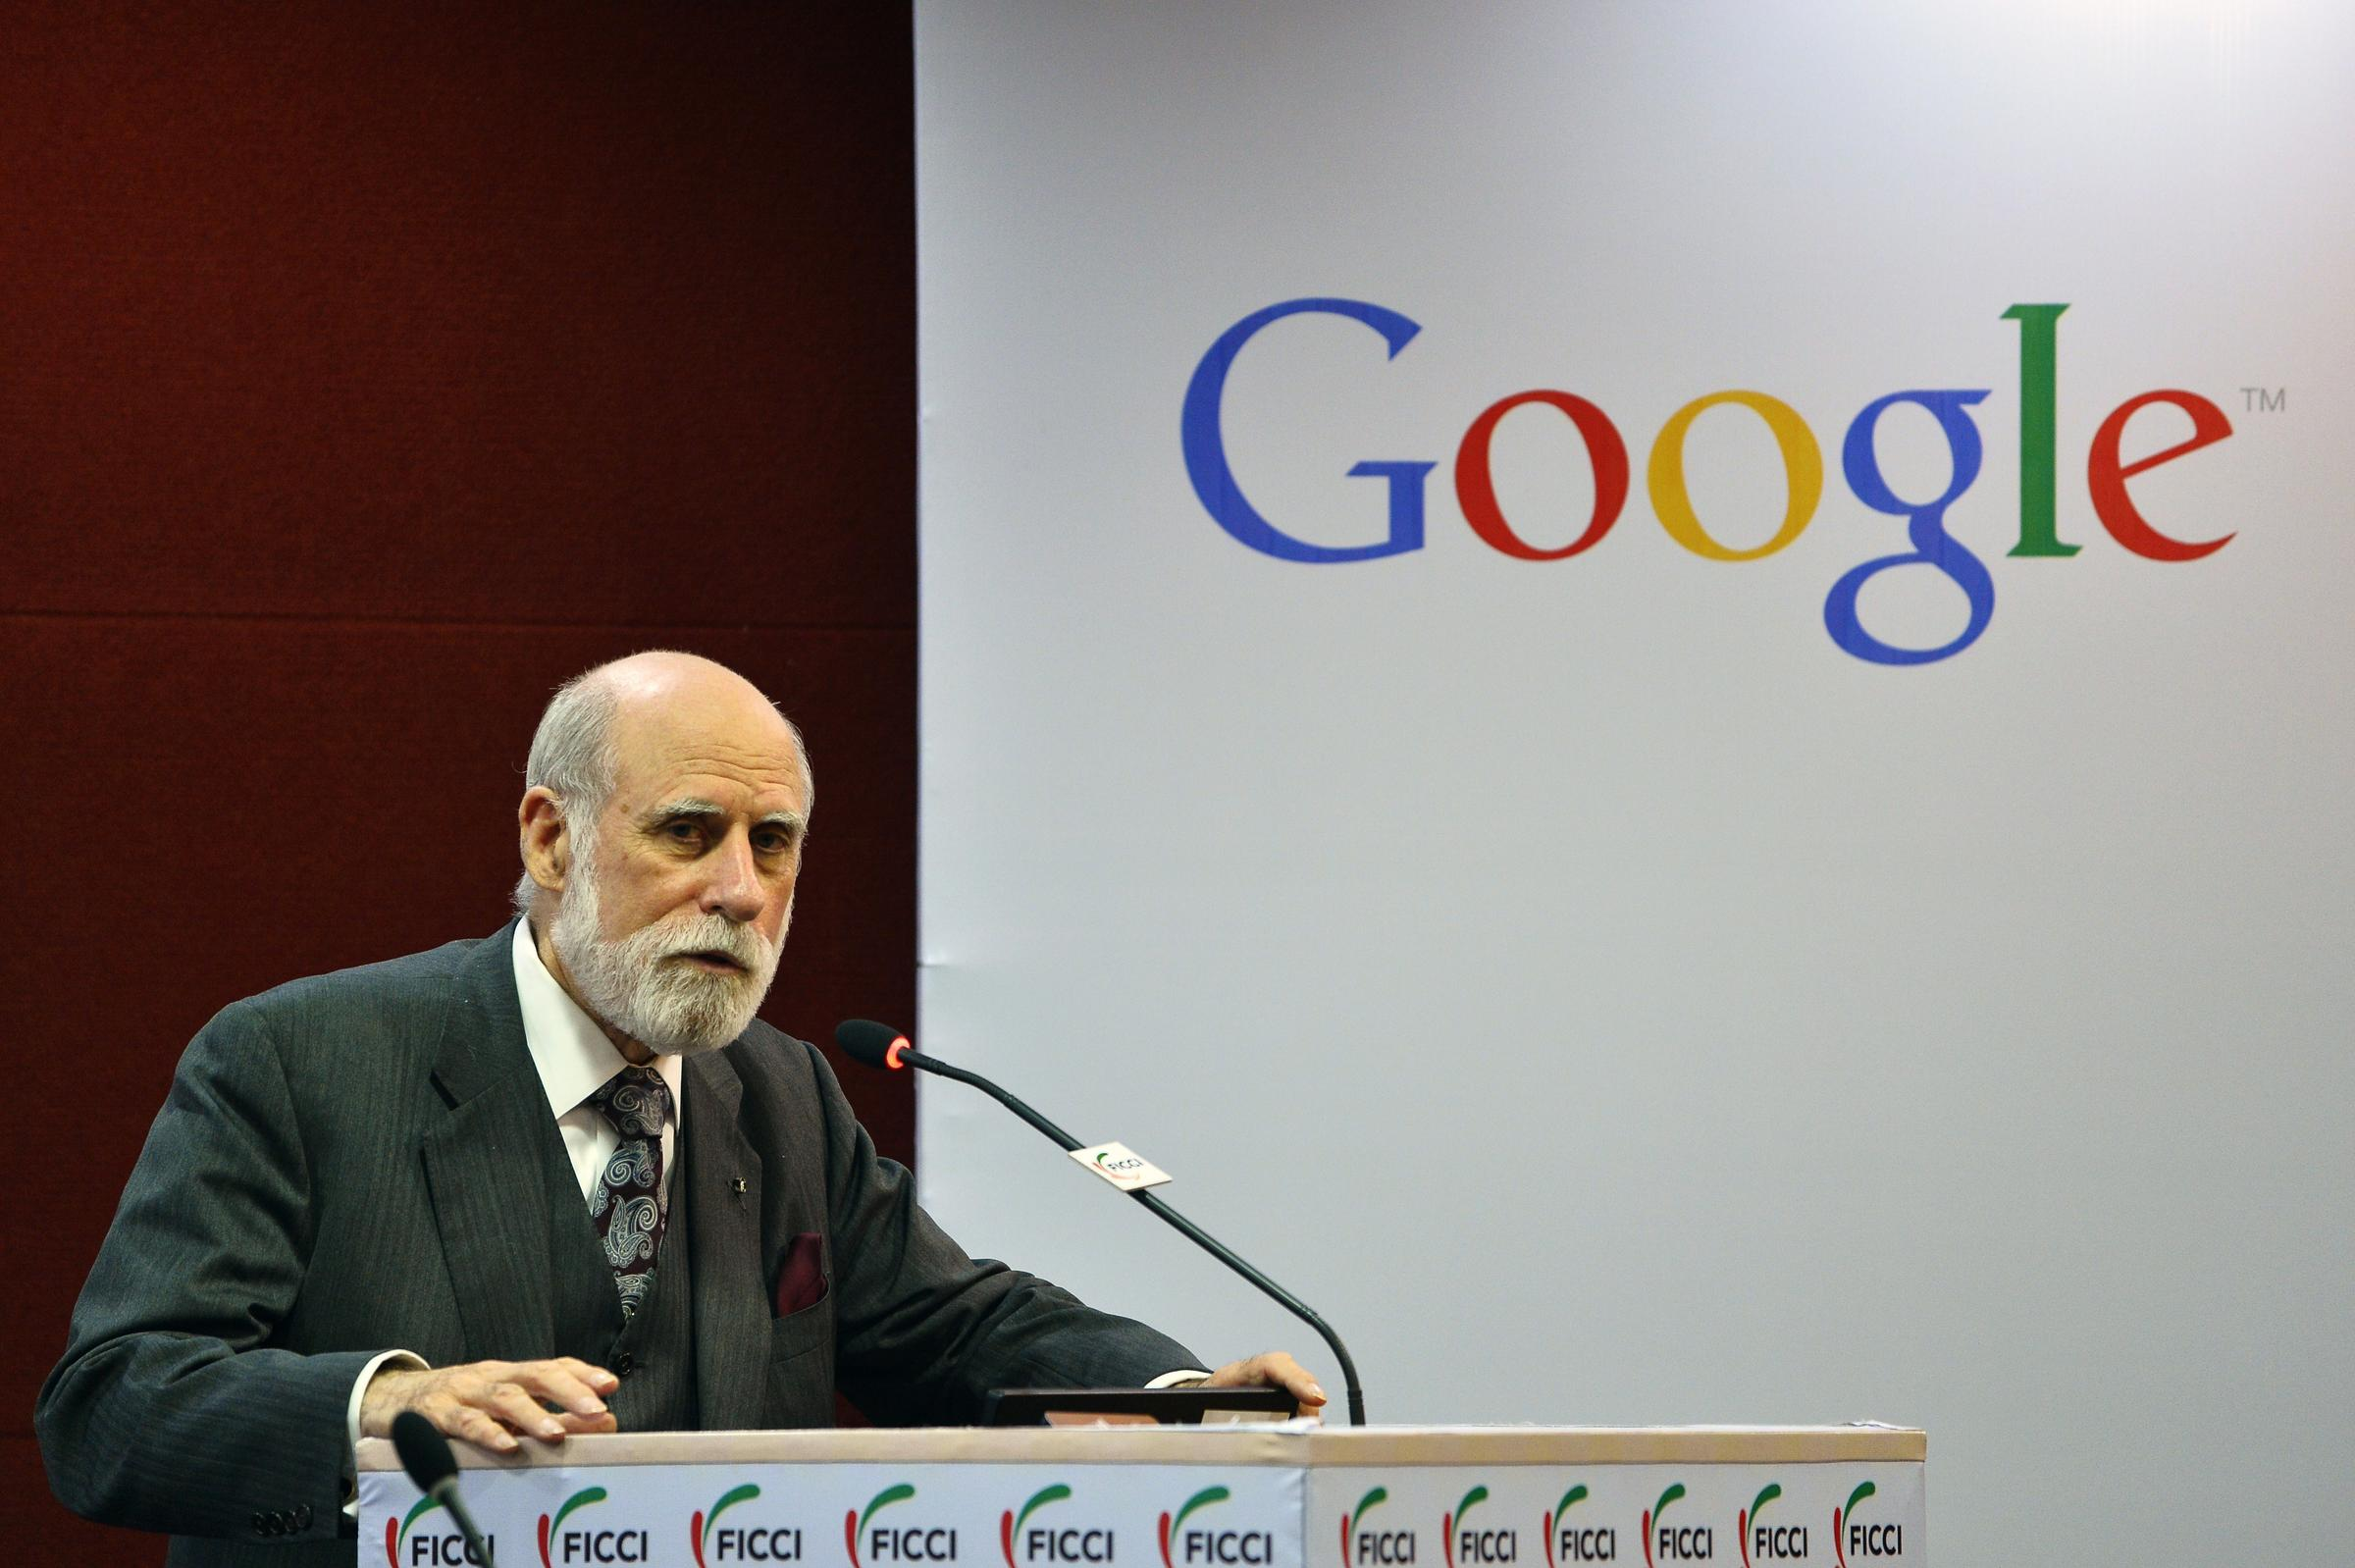 invention of the internet Fascinating facts about the invention of the internet by vinton cerf in 1973.